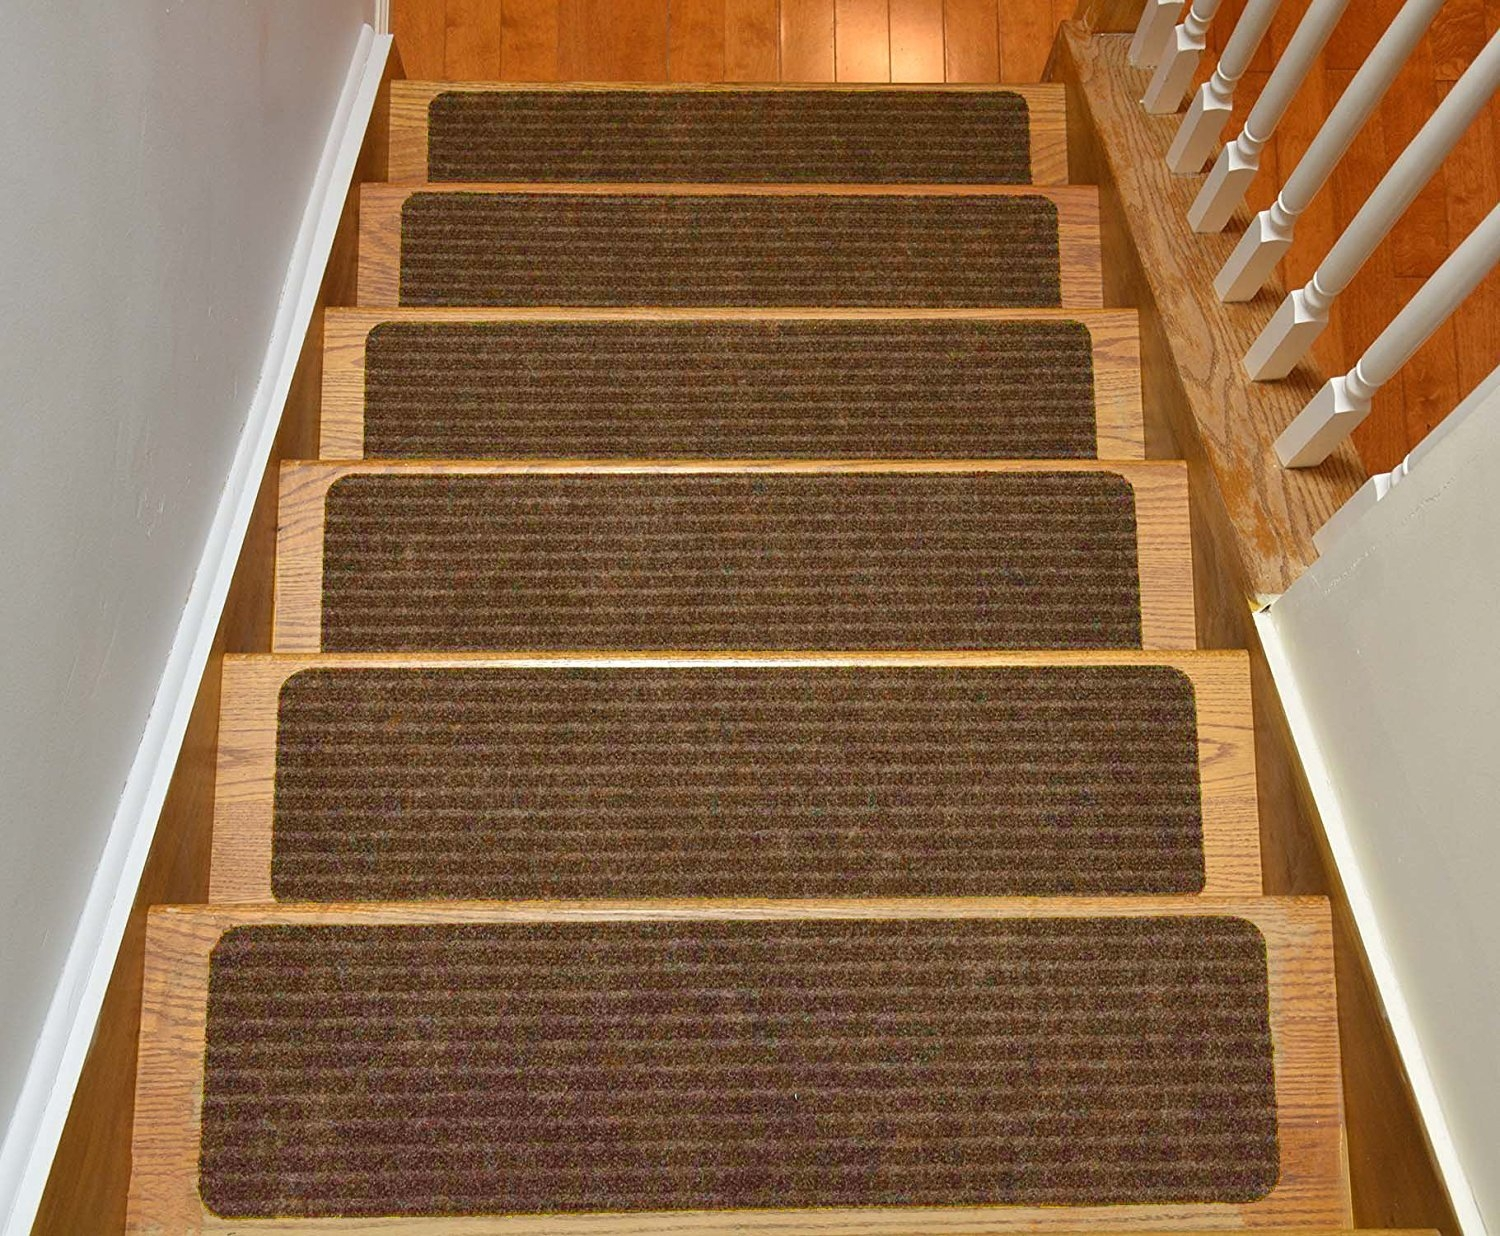 Stair Treads Collection Set Of 13 Indoor Skid Slip Resistant Brown Intended For 8 Inch Stair Treads (Image 13 of 15)